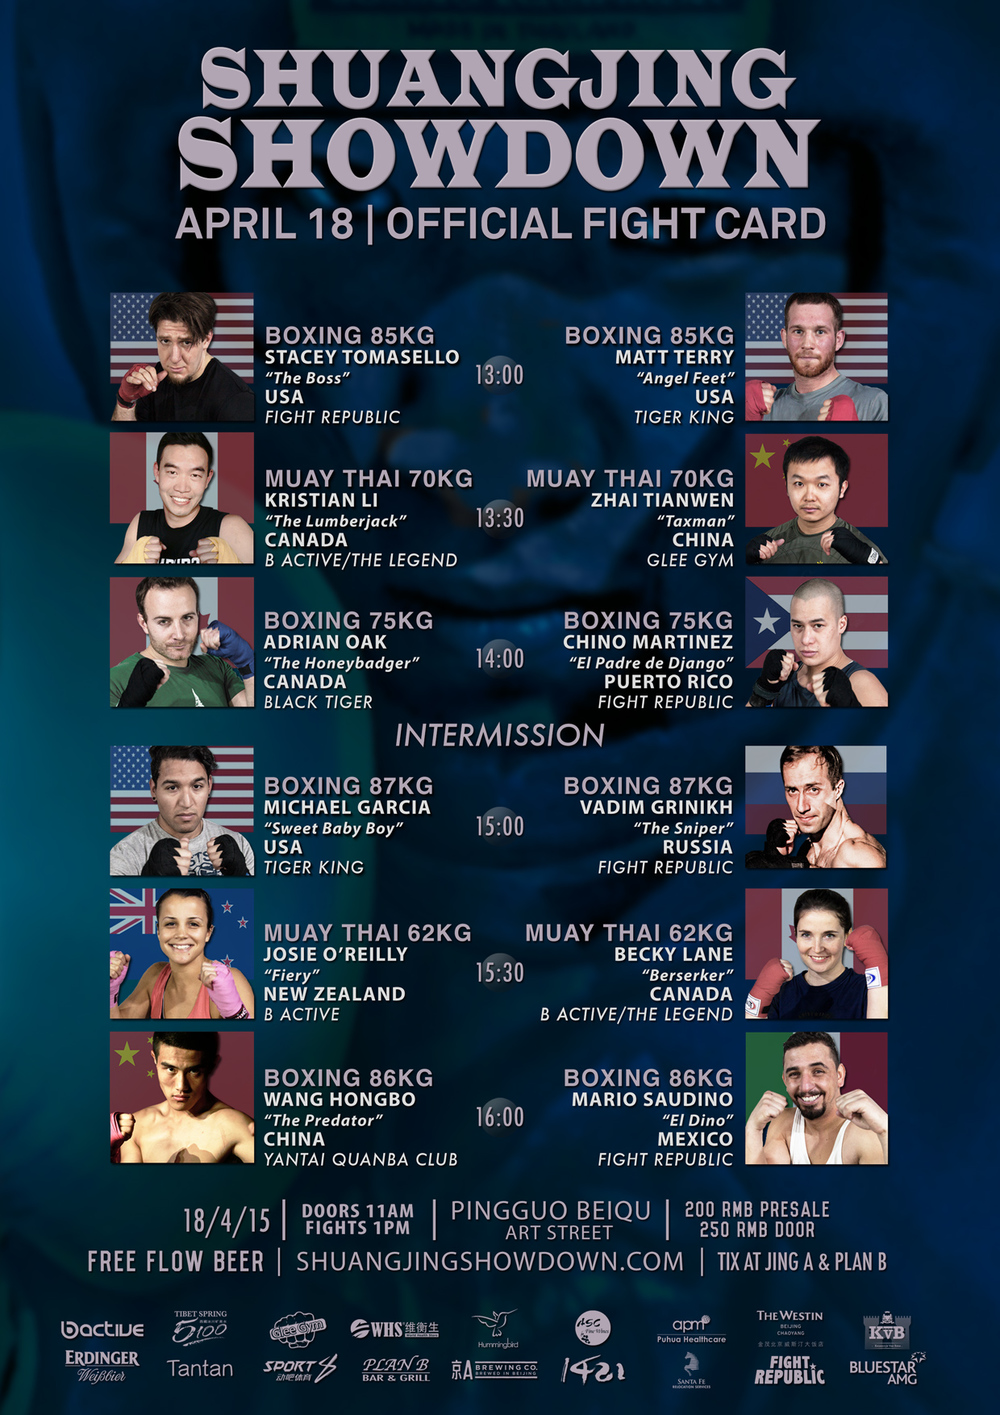 Shuangjing Showdown Boxing Muay Thai fight card